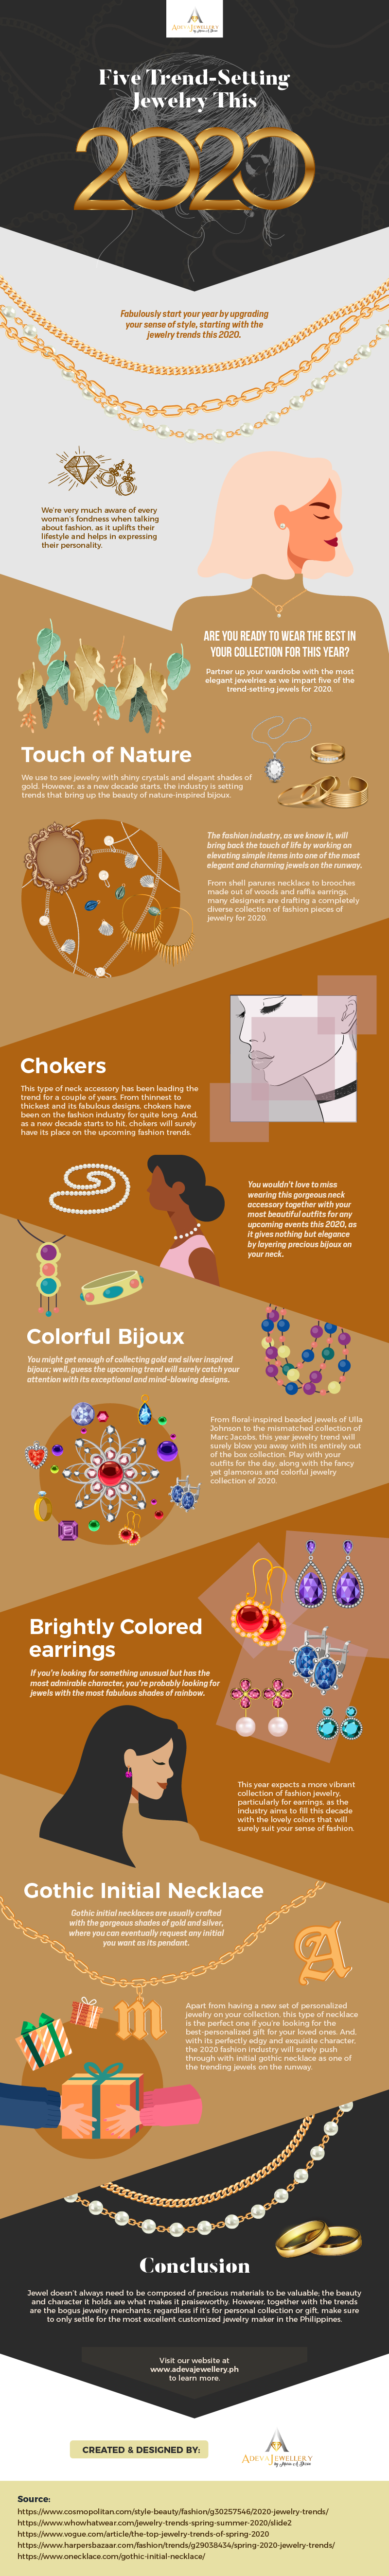 Five Trend-Setting Jewelry Styles this 2020 #infographic